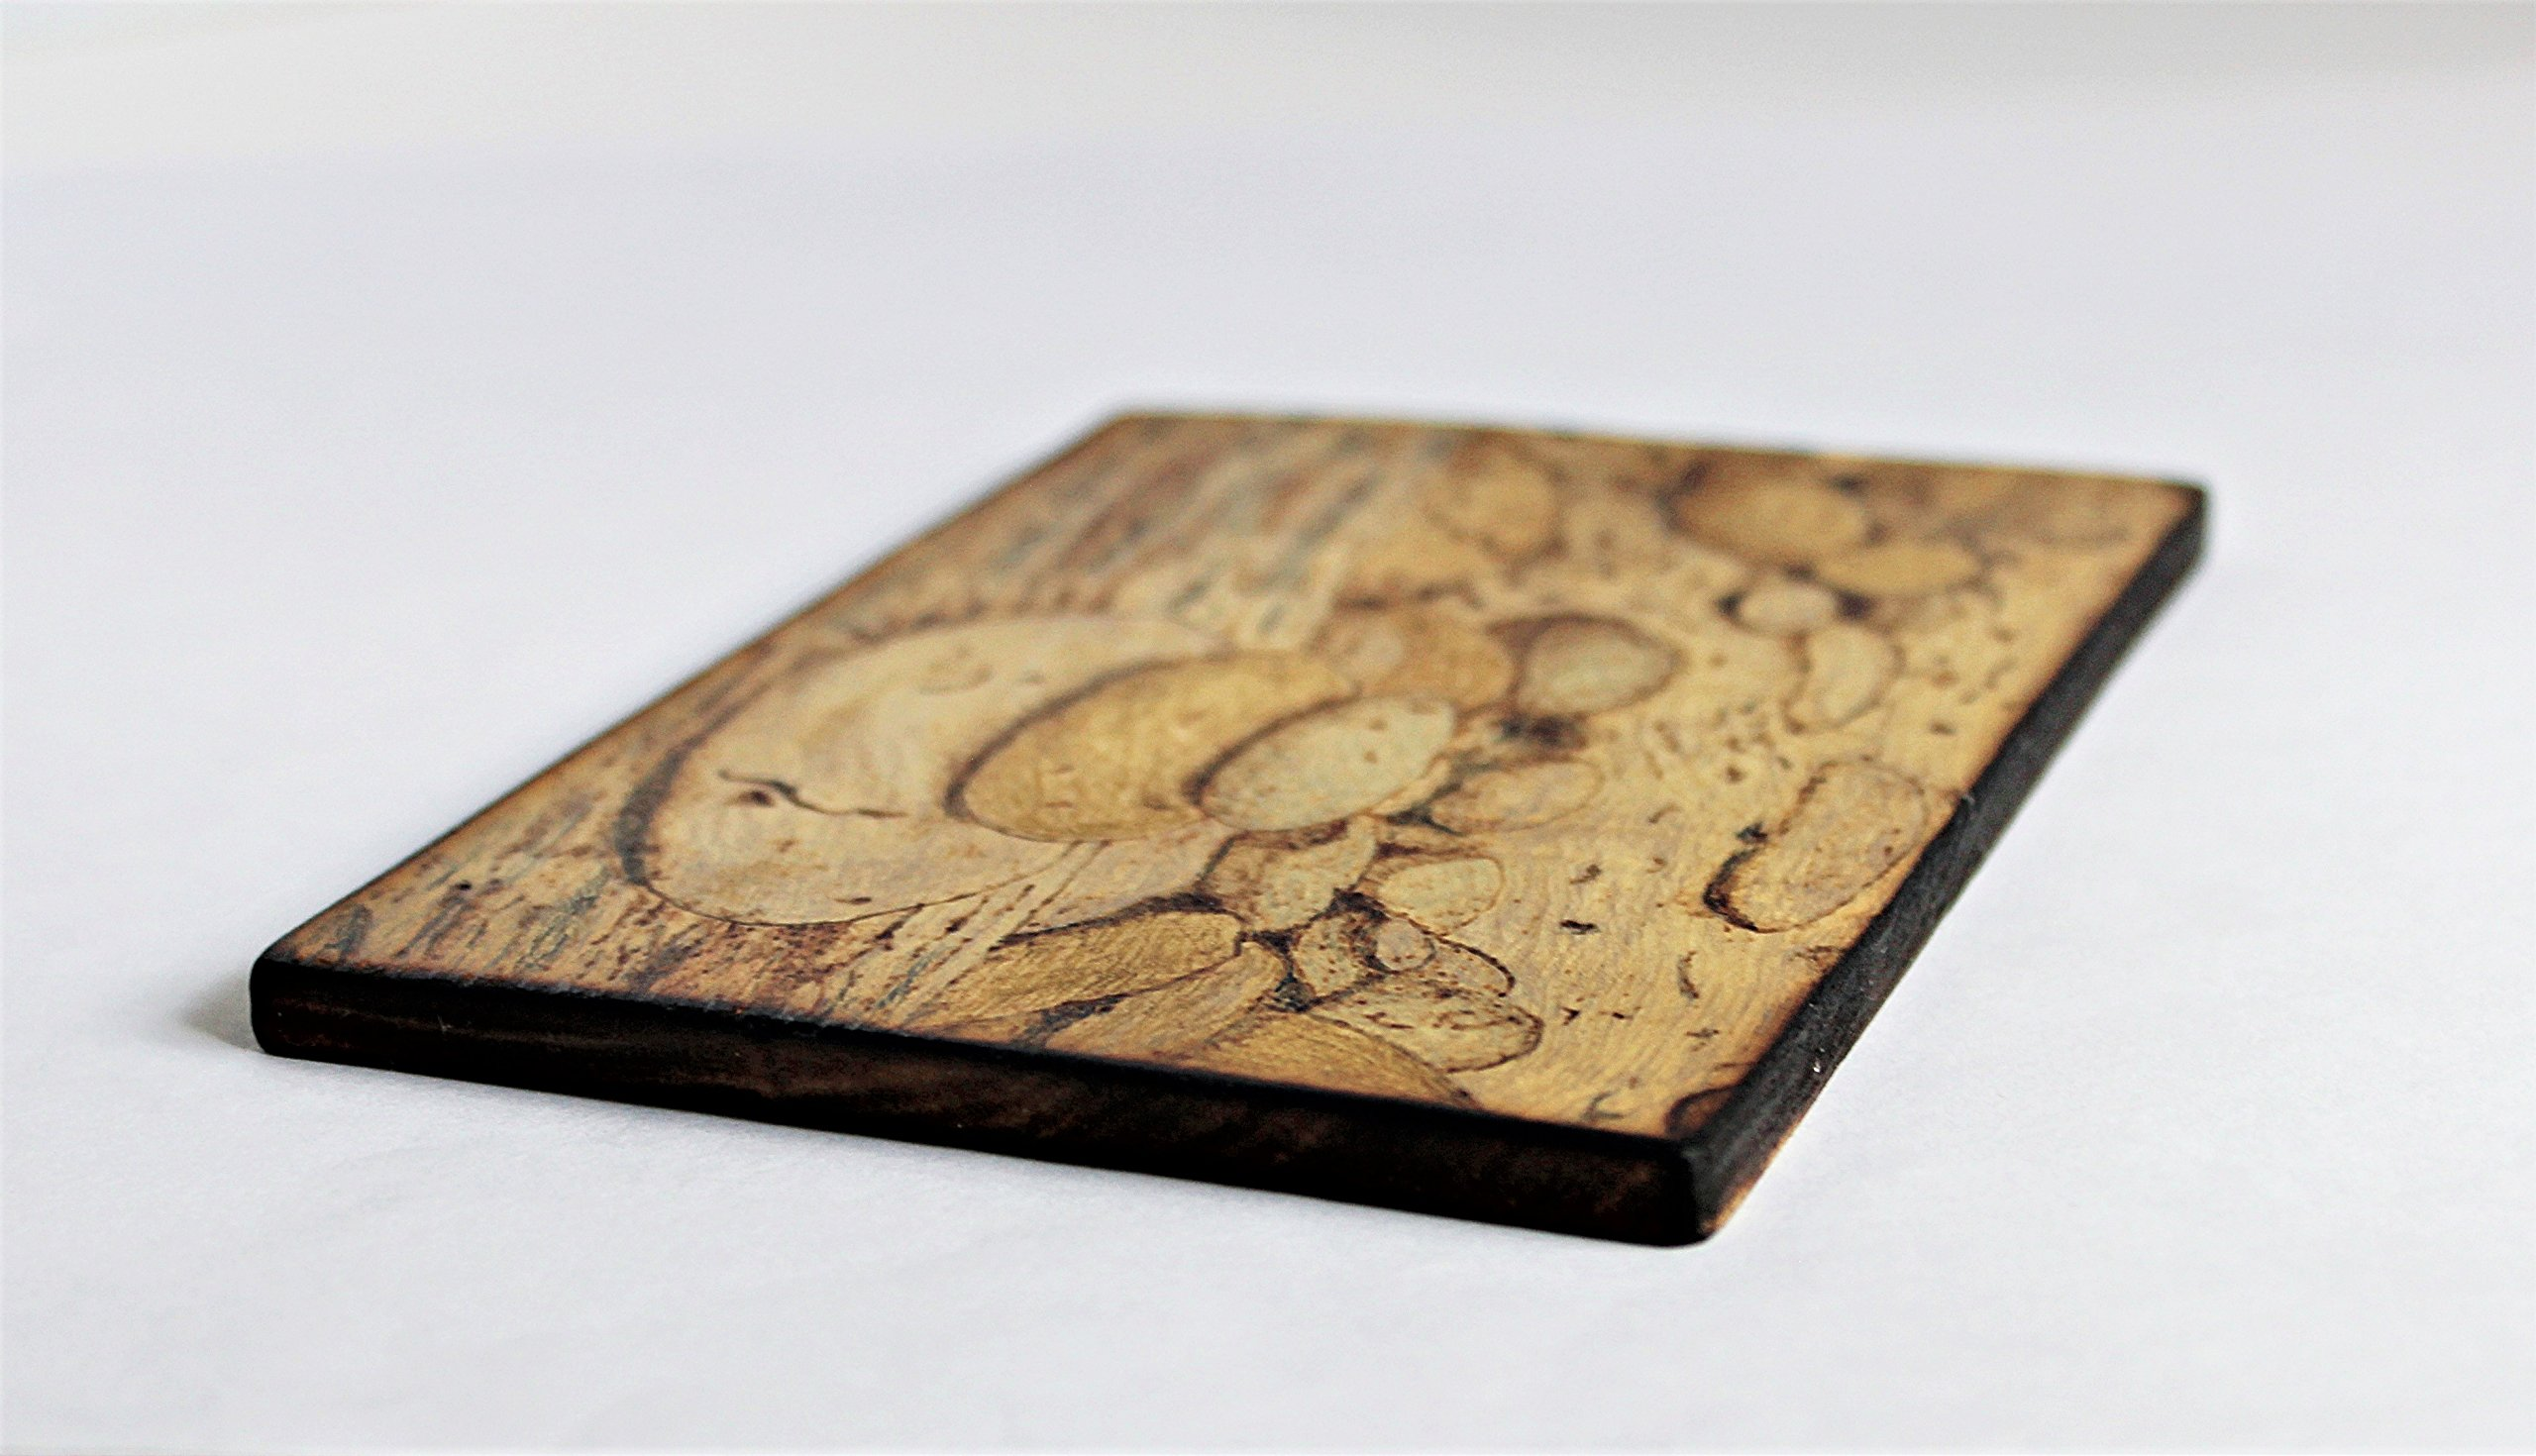 Wood Burned Cairn Stones Pyrography Small Woodburned Nature Rocky Shoreline Picture Desktop Art by Hendywood (Image #4)